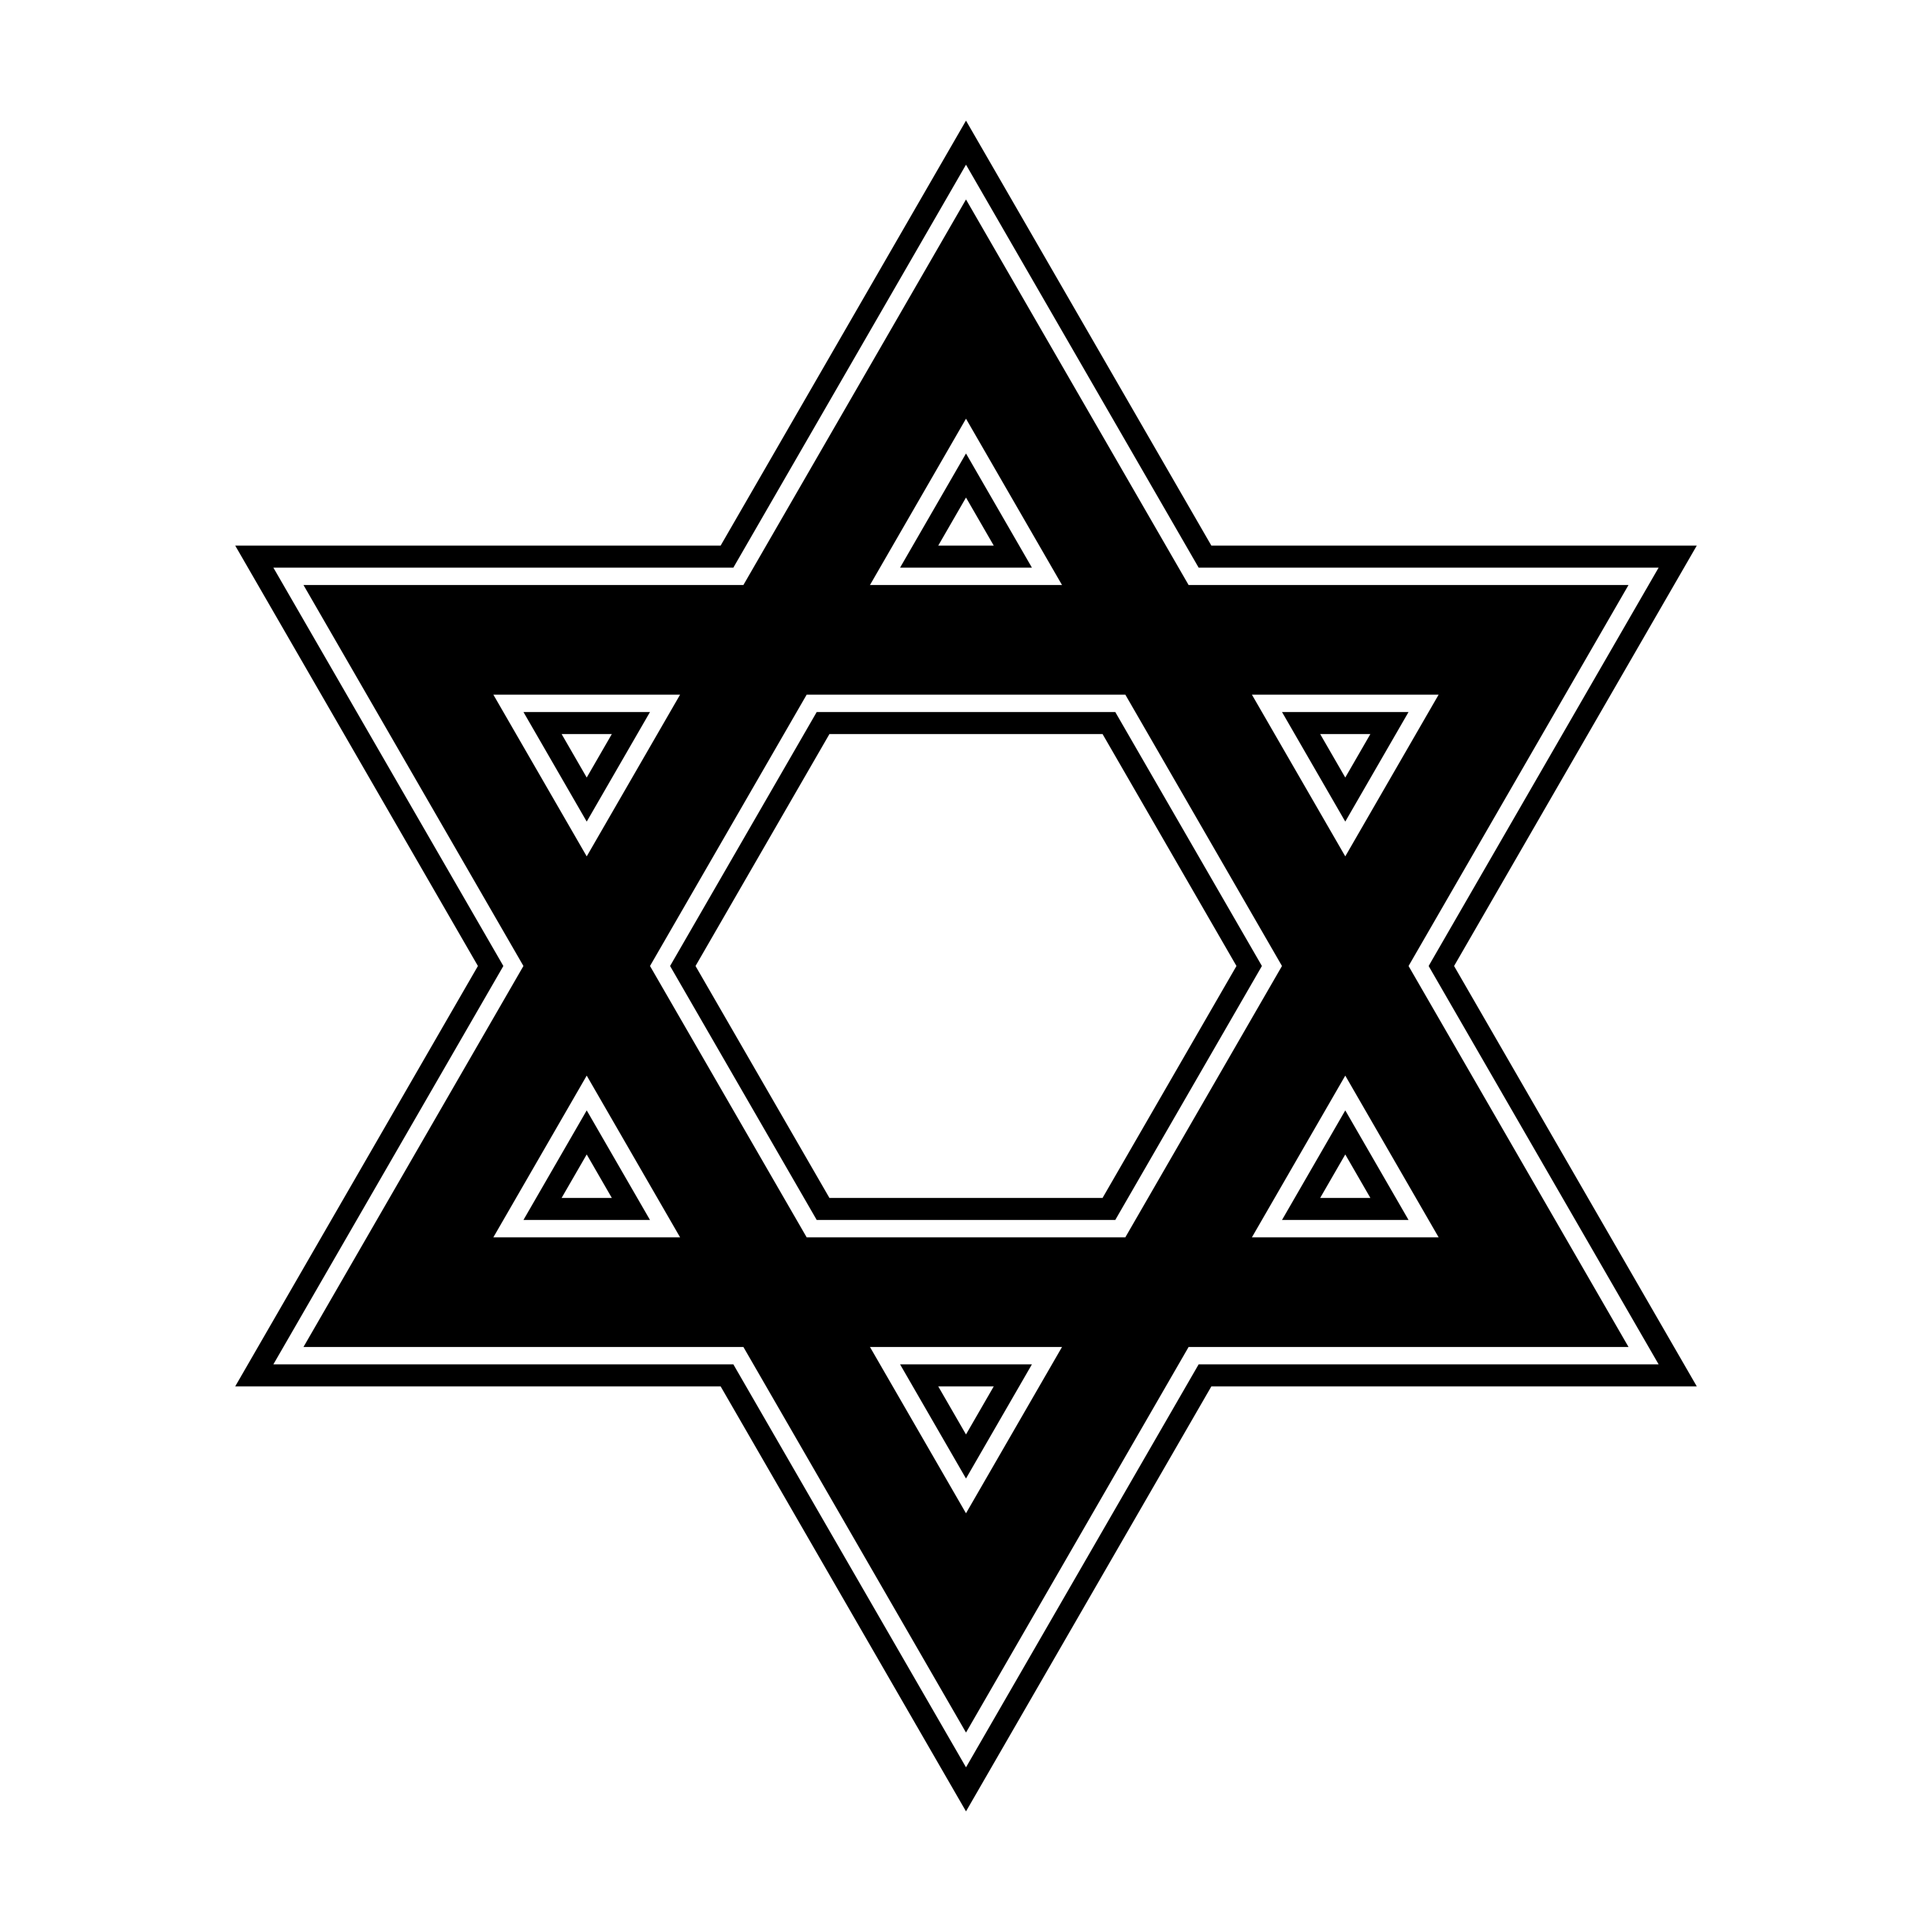 Jewish Star Of David Six Pointed Star In Black With